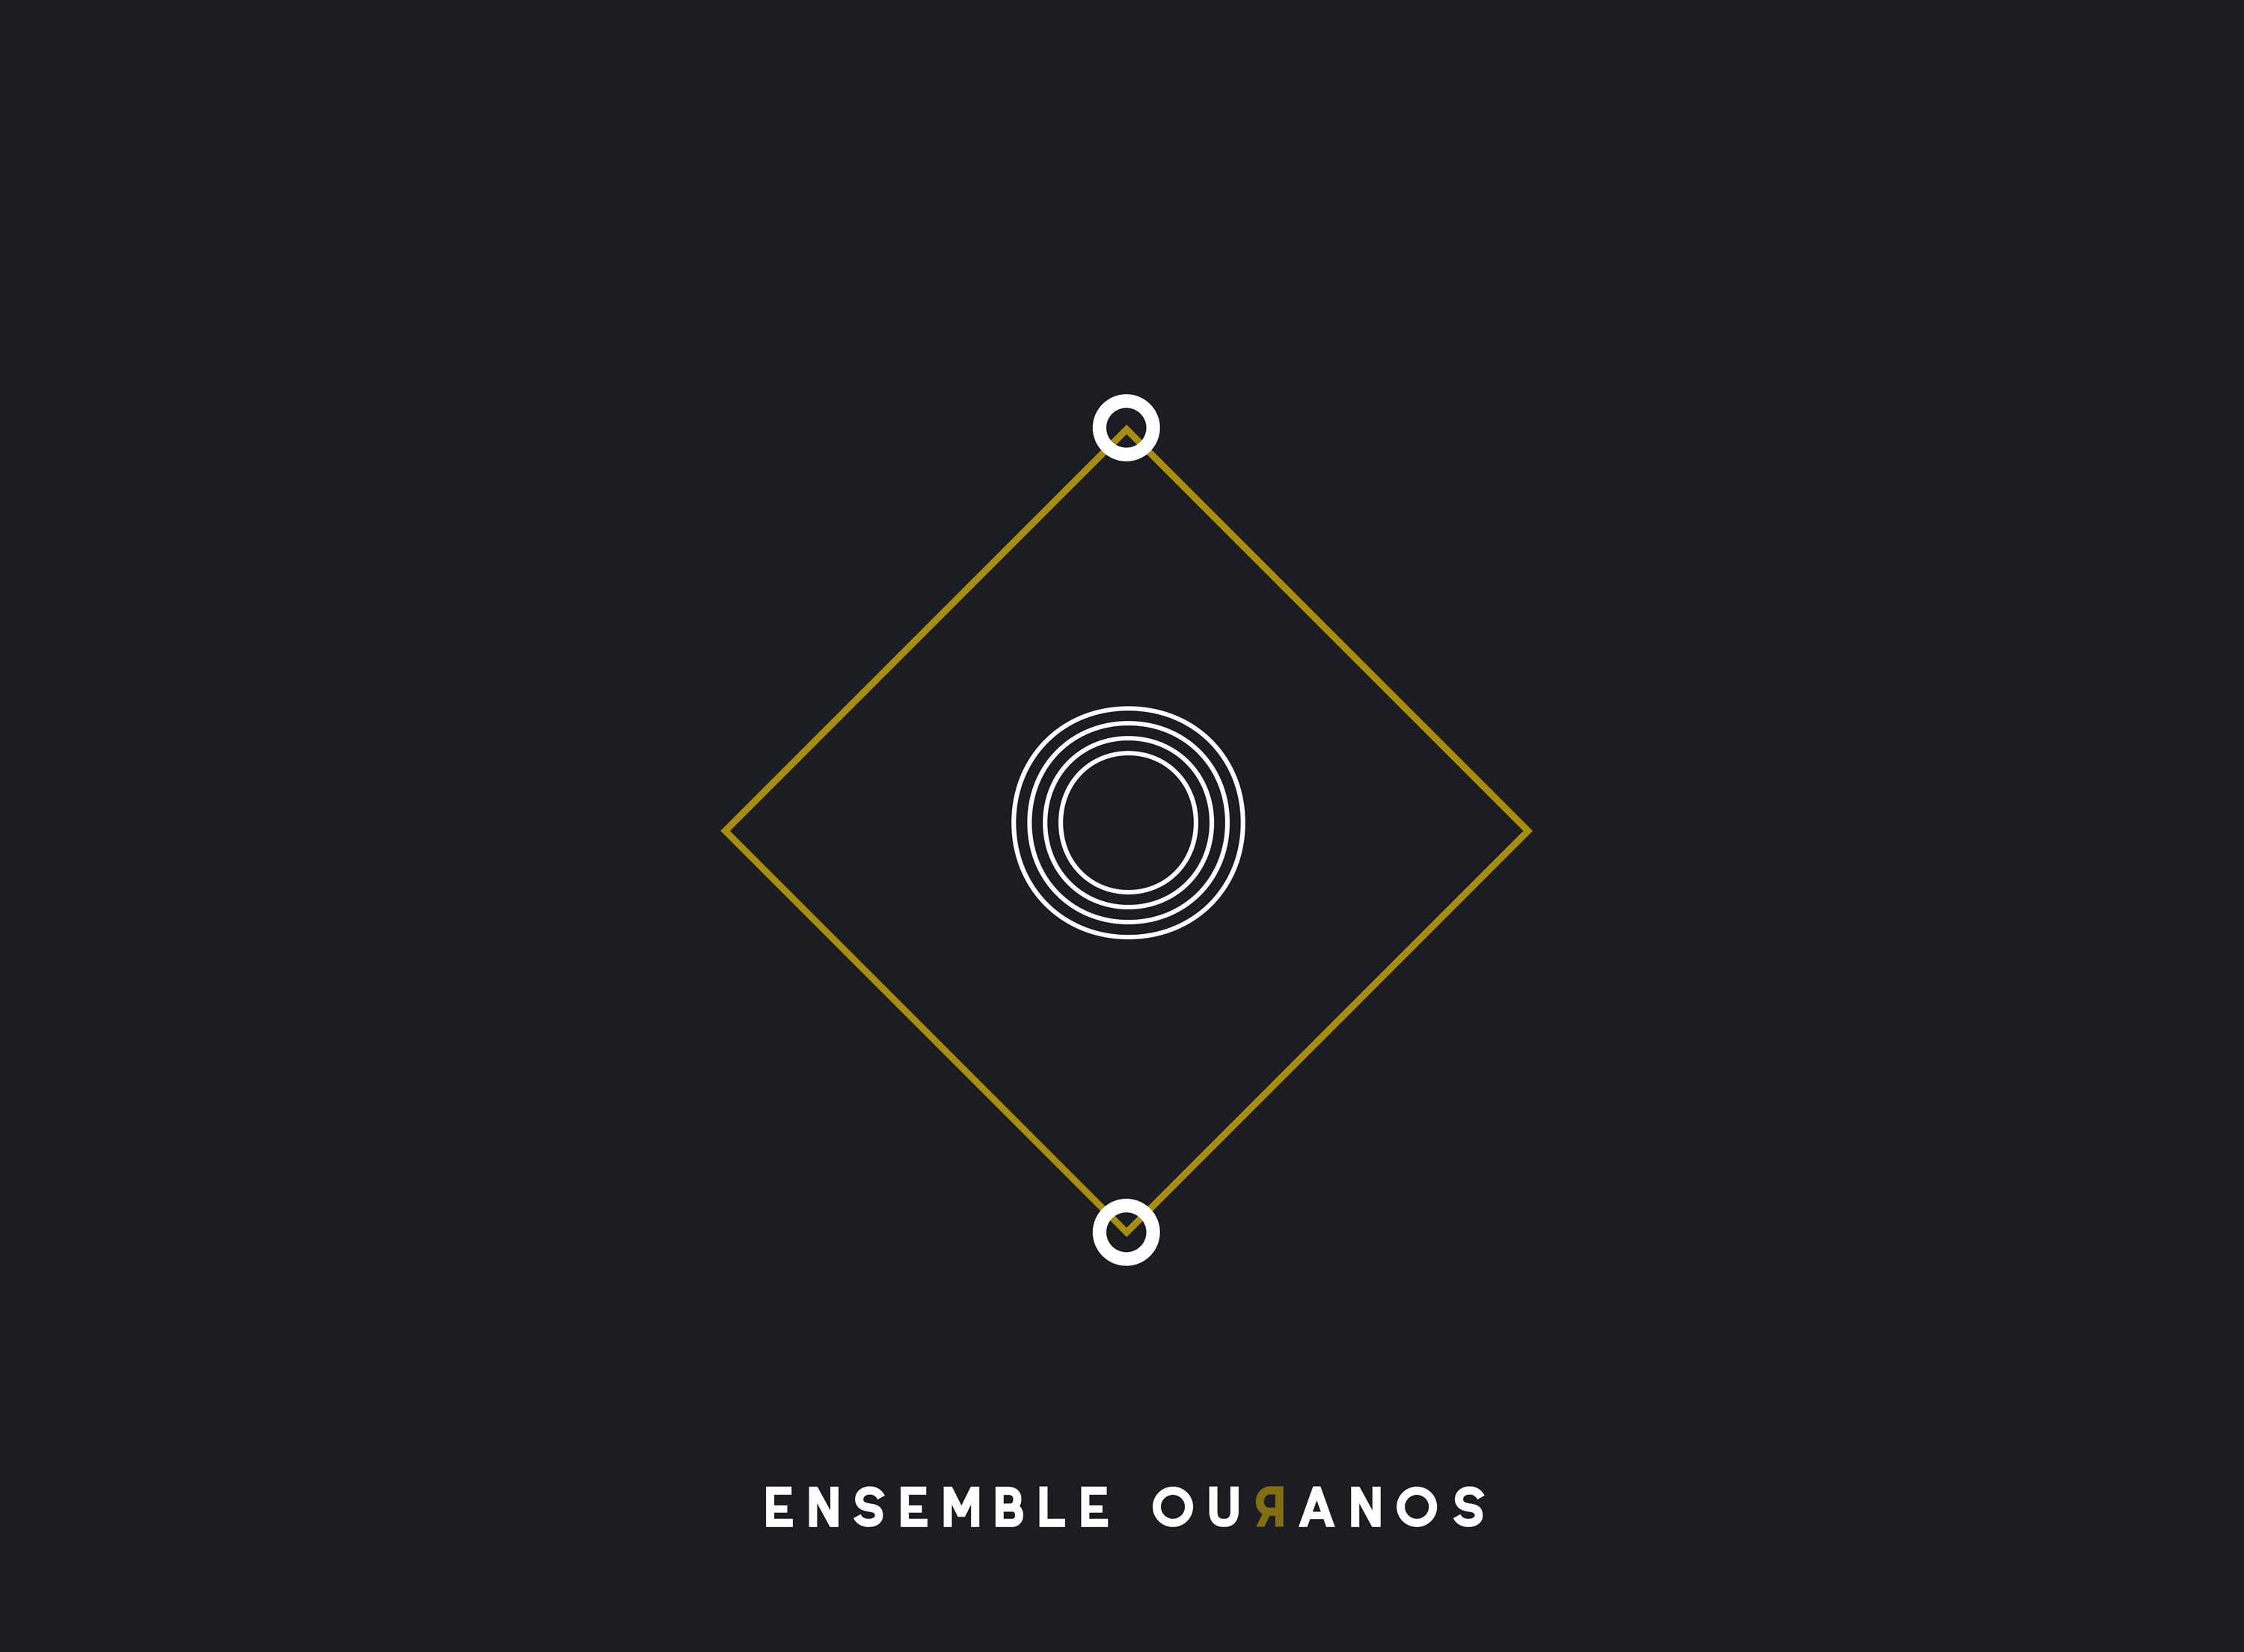 ensemble ouranos